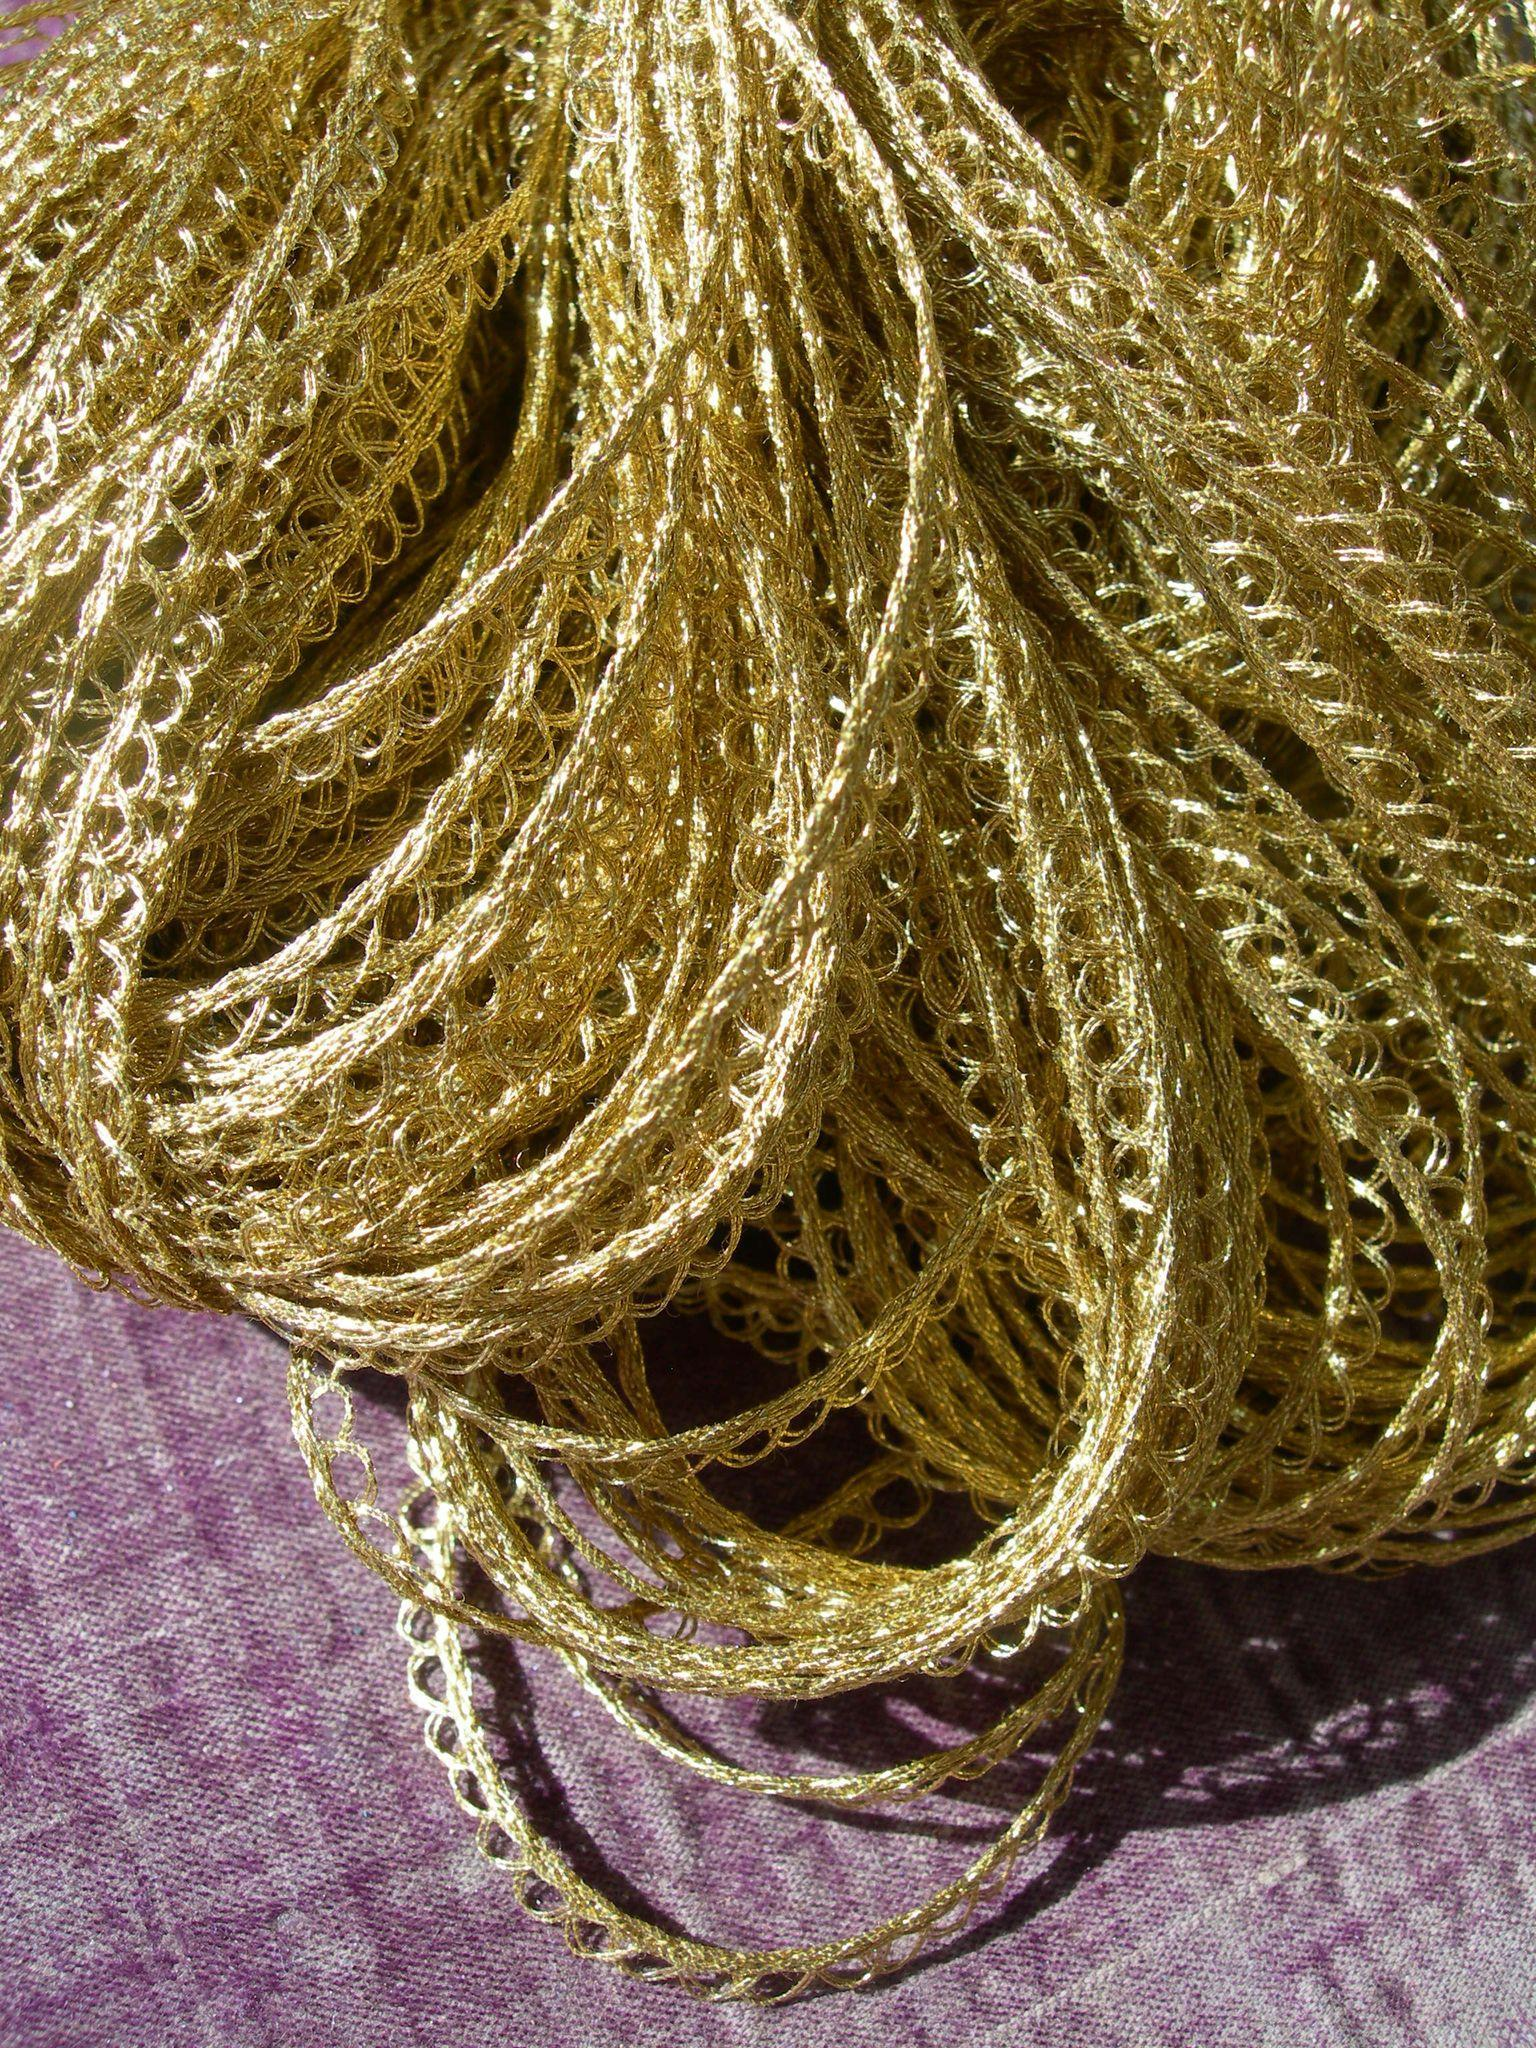 Large skein - 60 yards vintage French 1920s gold coloured metallic thread picot lace edging trim